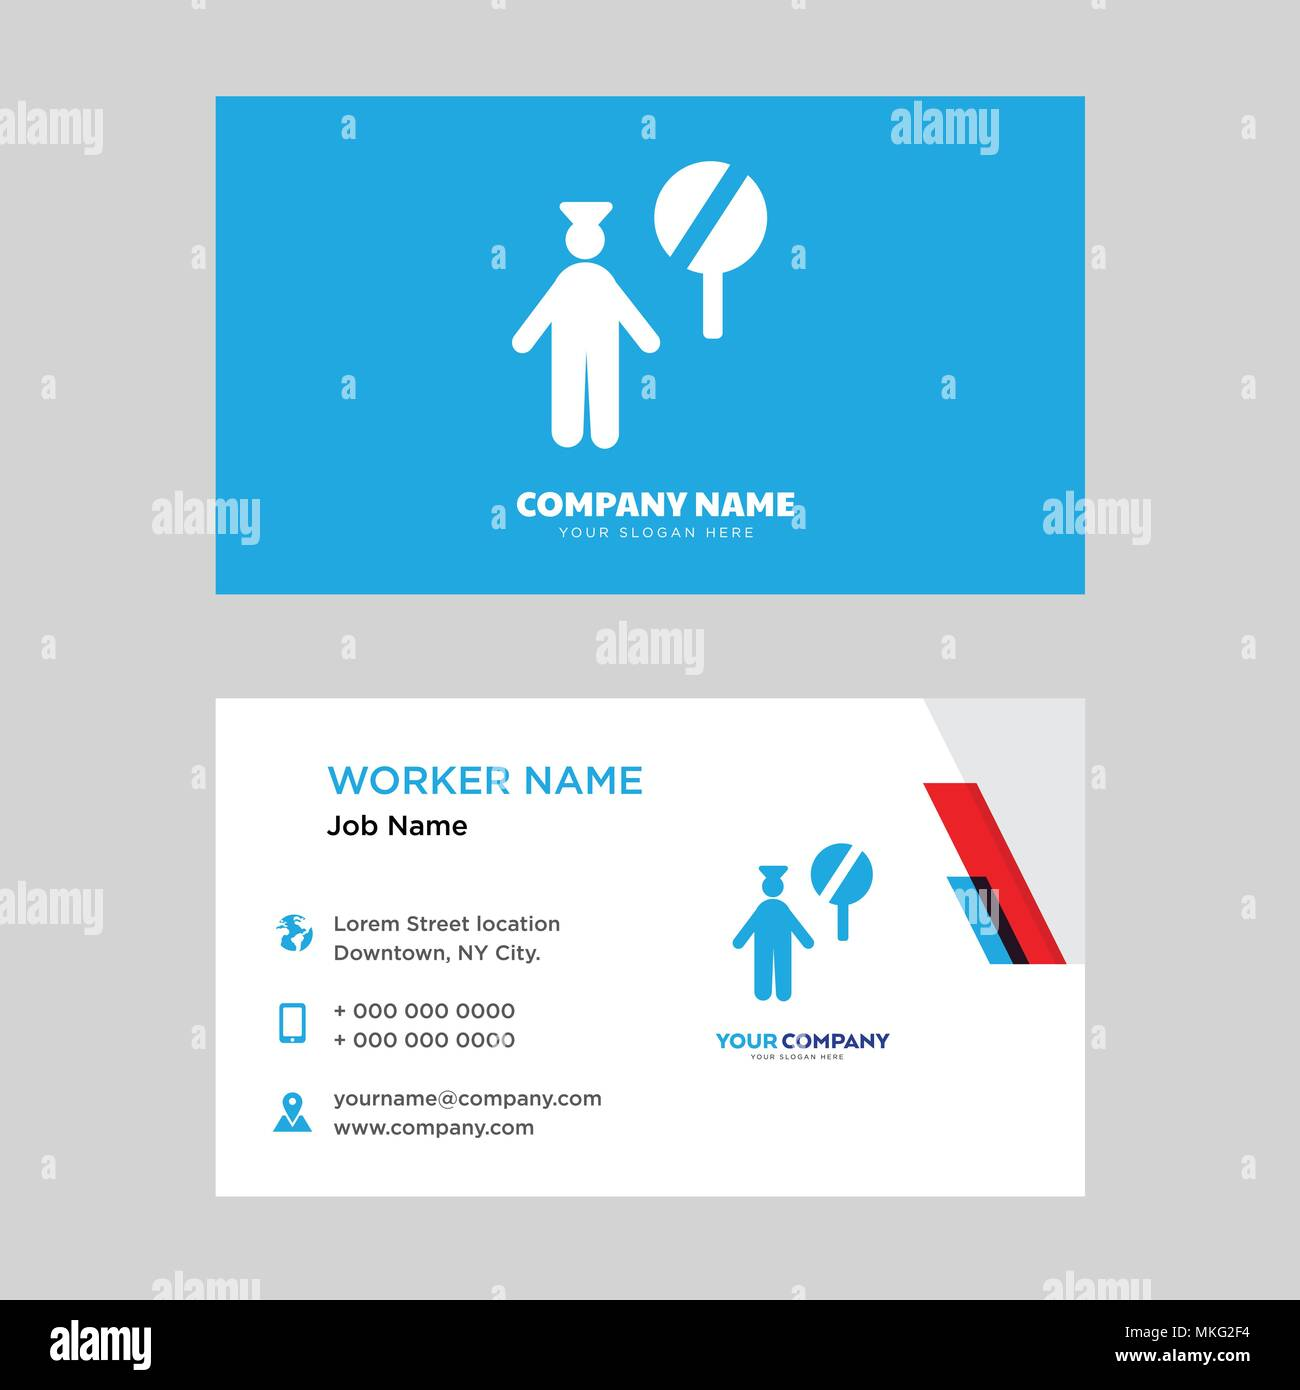 Police business card design template visiting for your company police business card design template visiting for your company modern horizontal identity card vector colourmoves